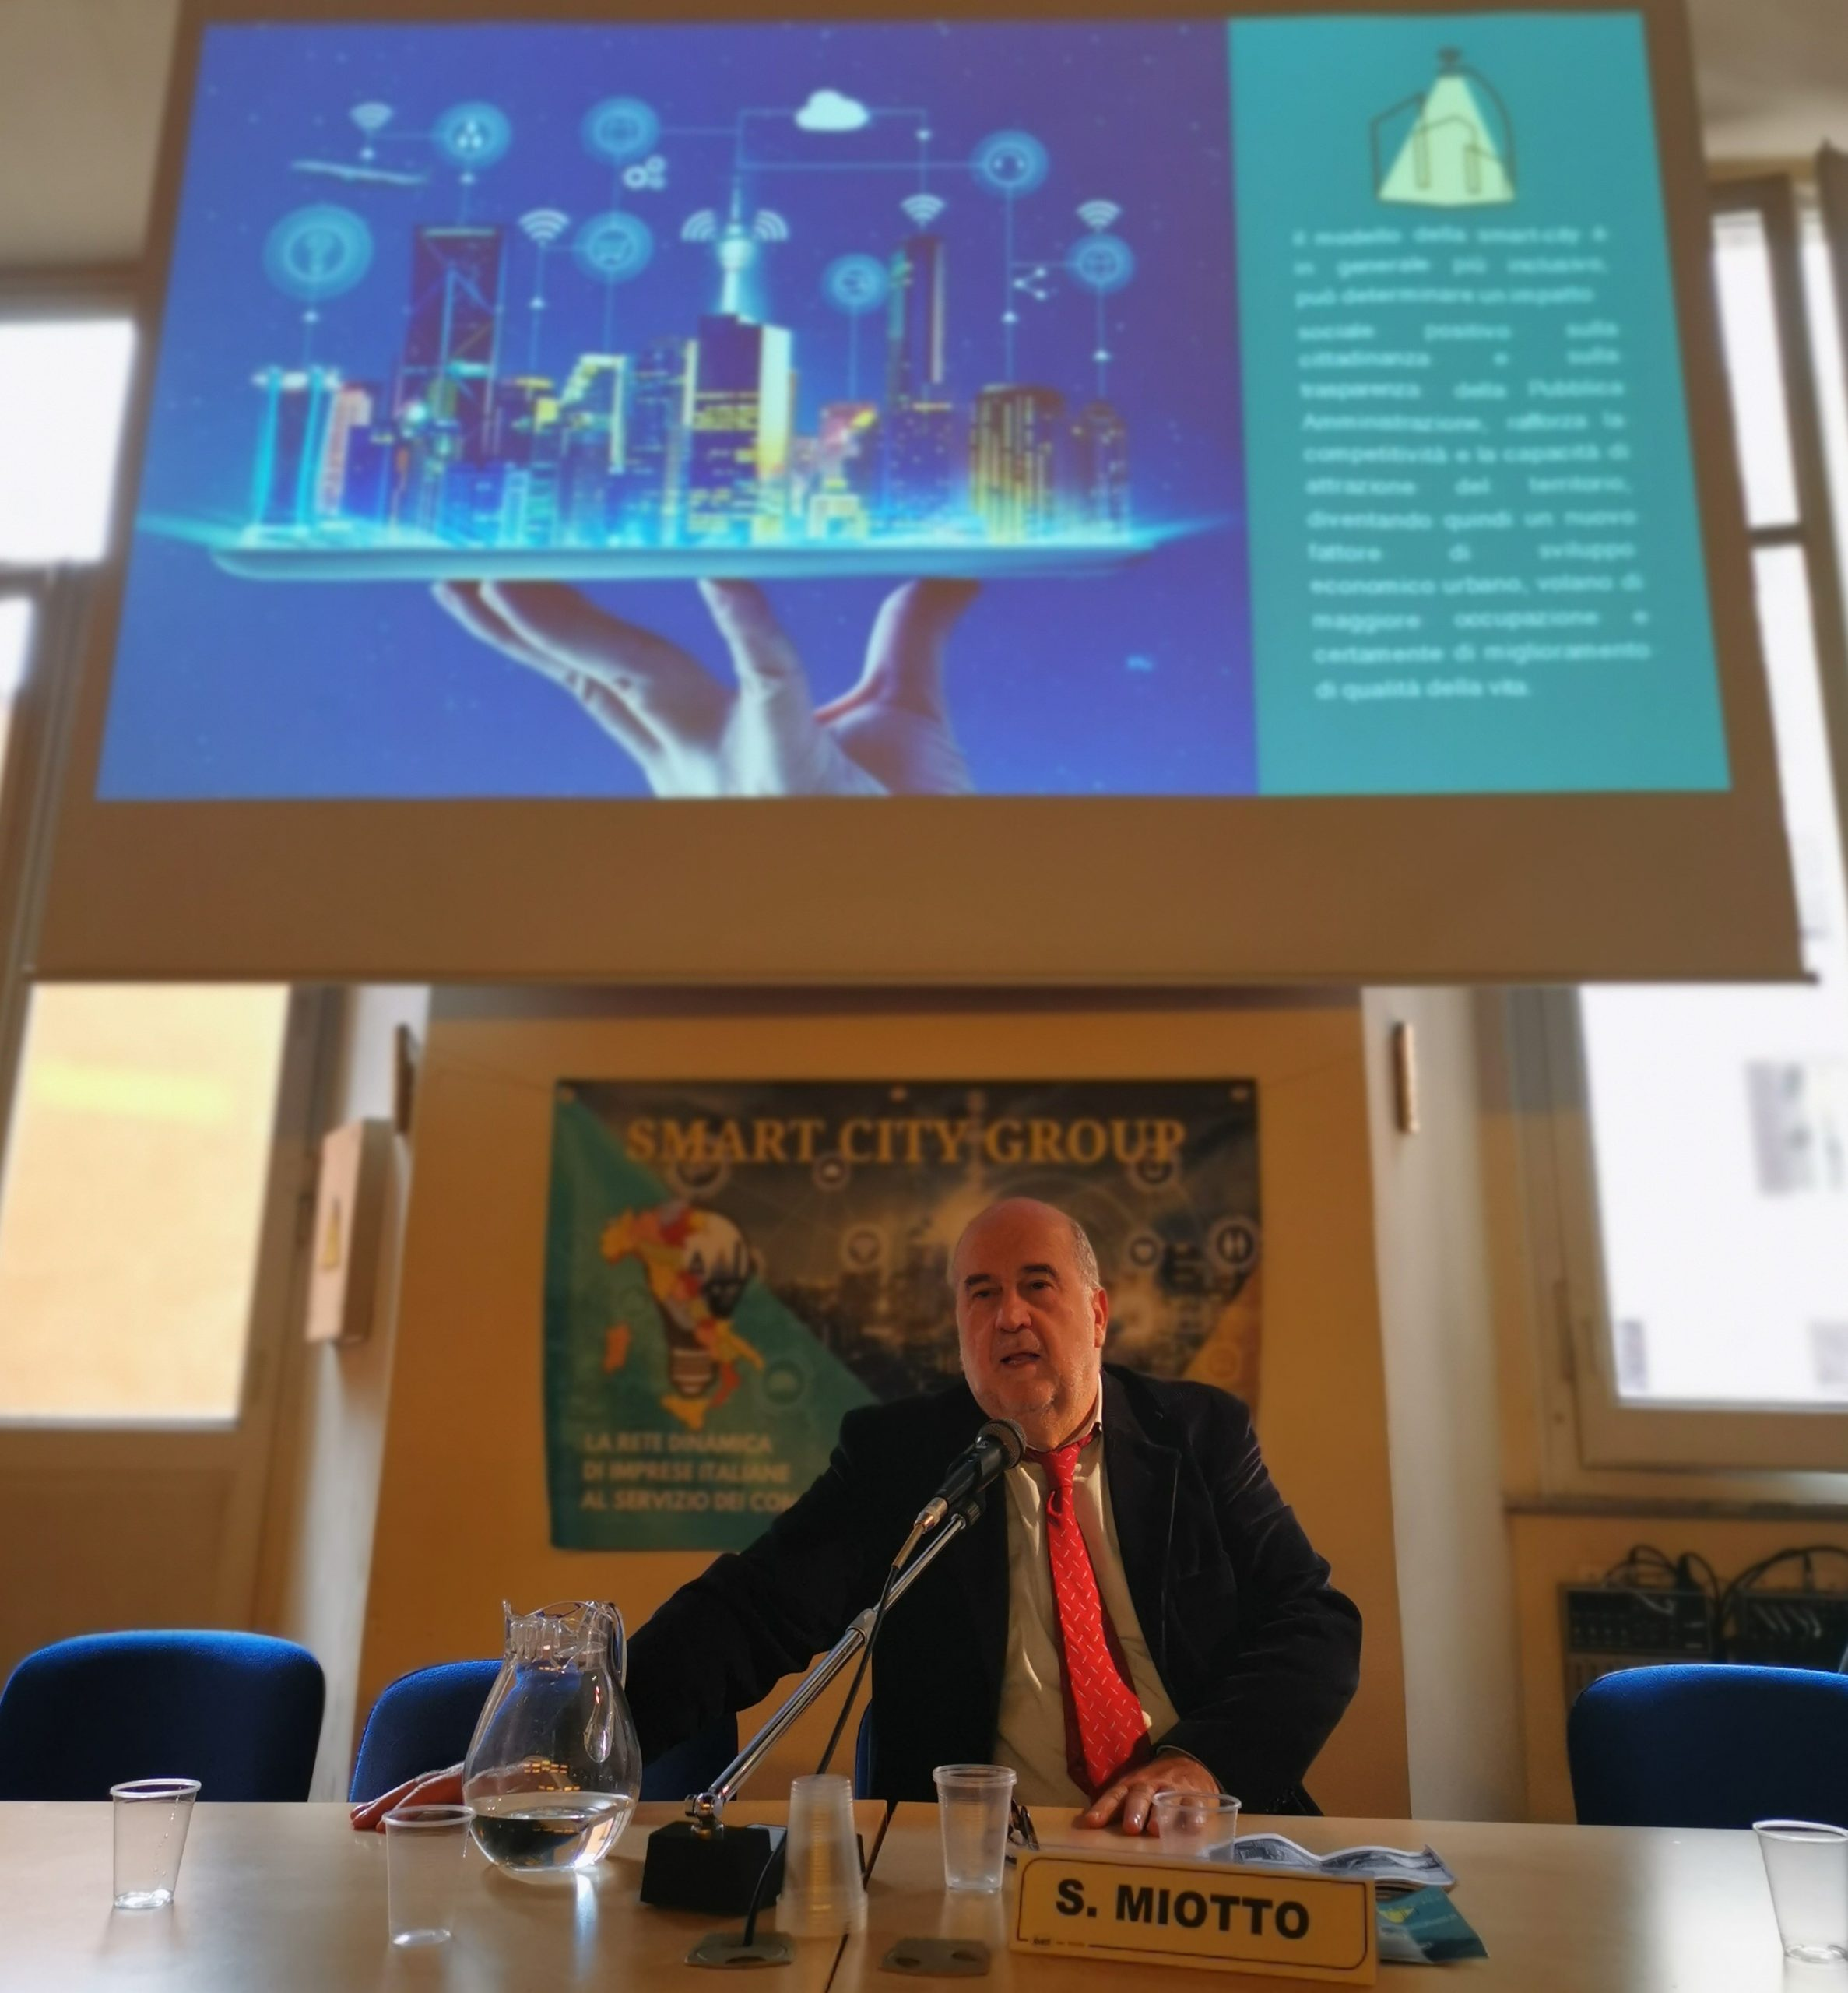 S. MIOTTO (SMART CITY GROUP)